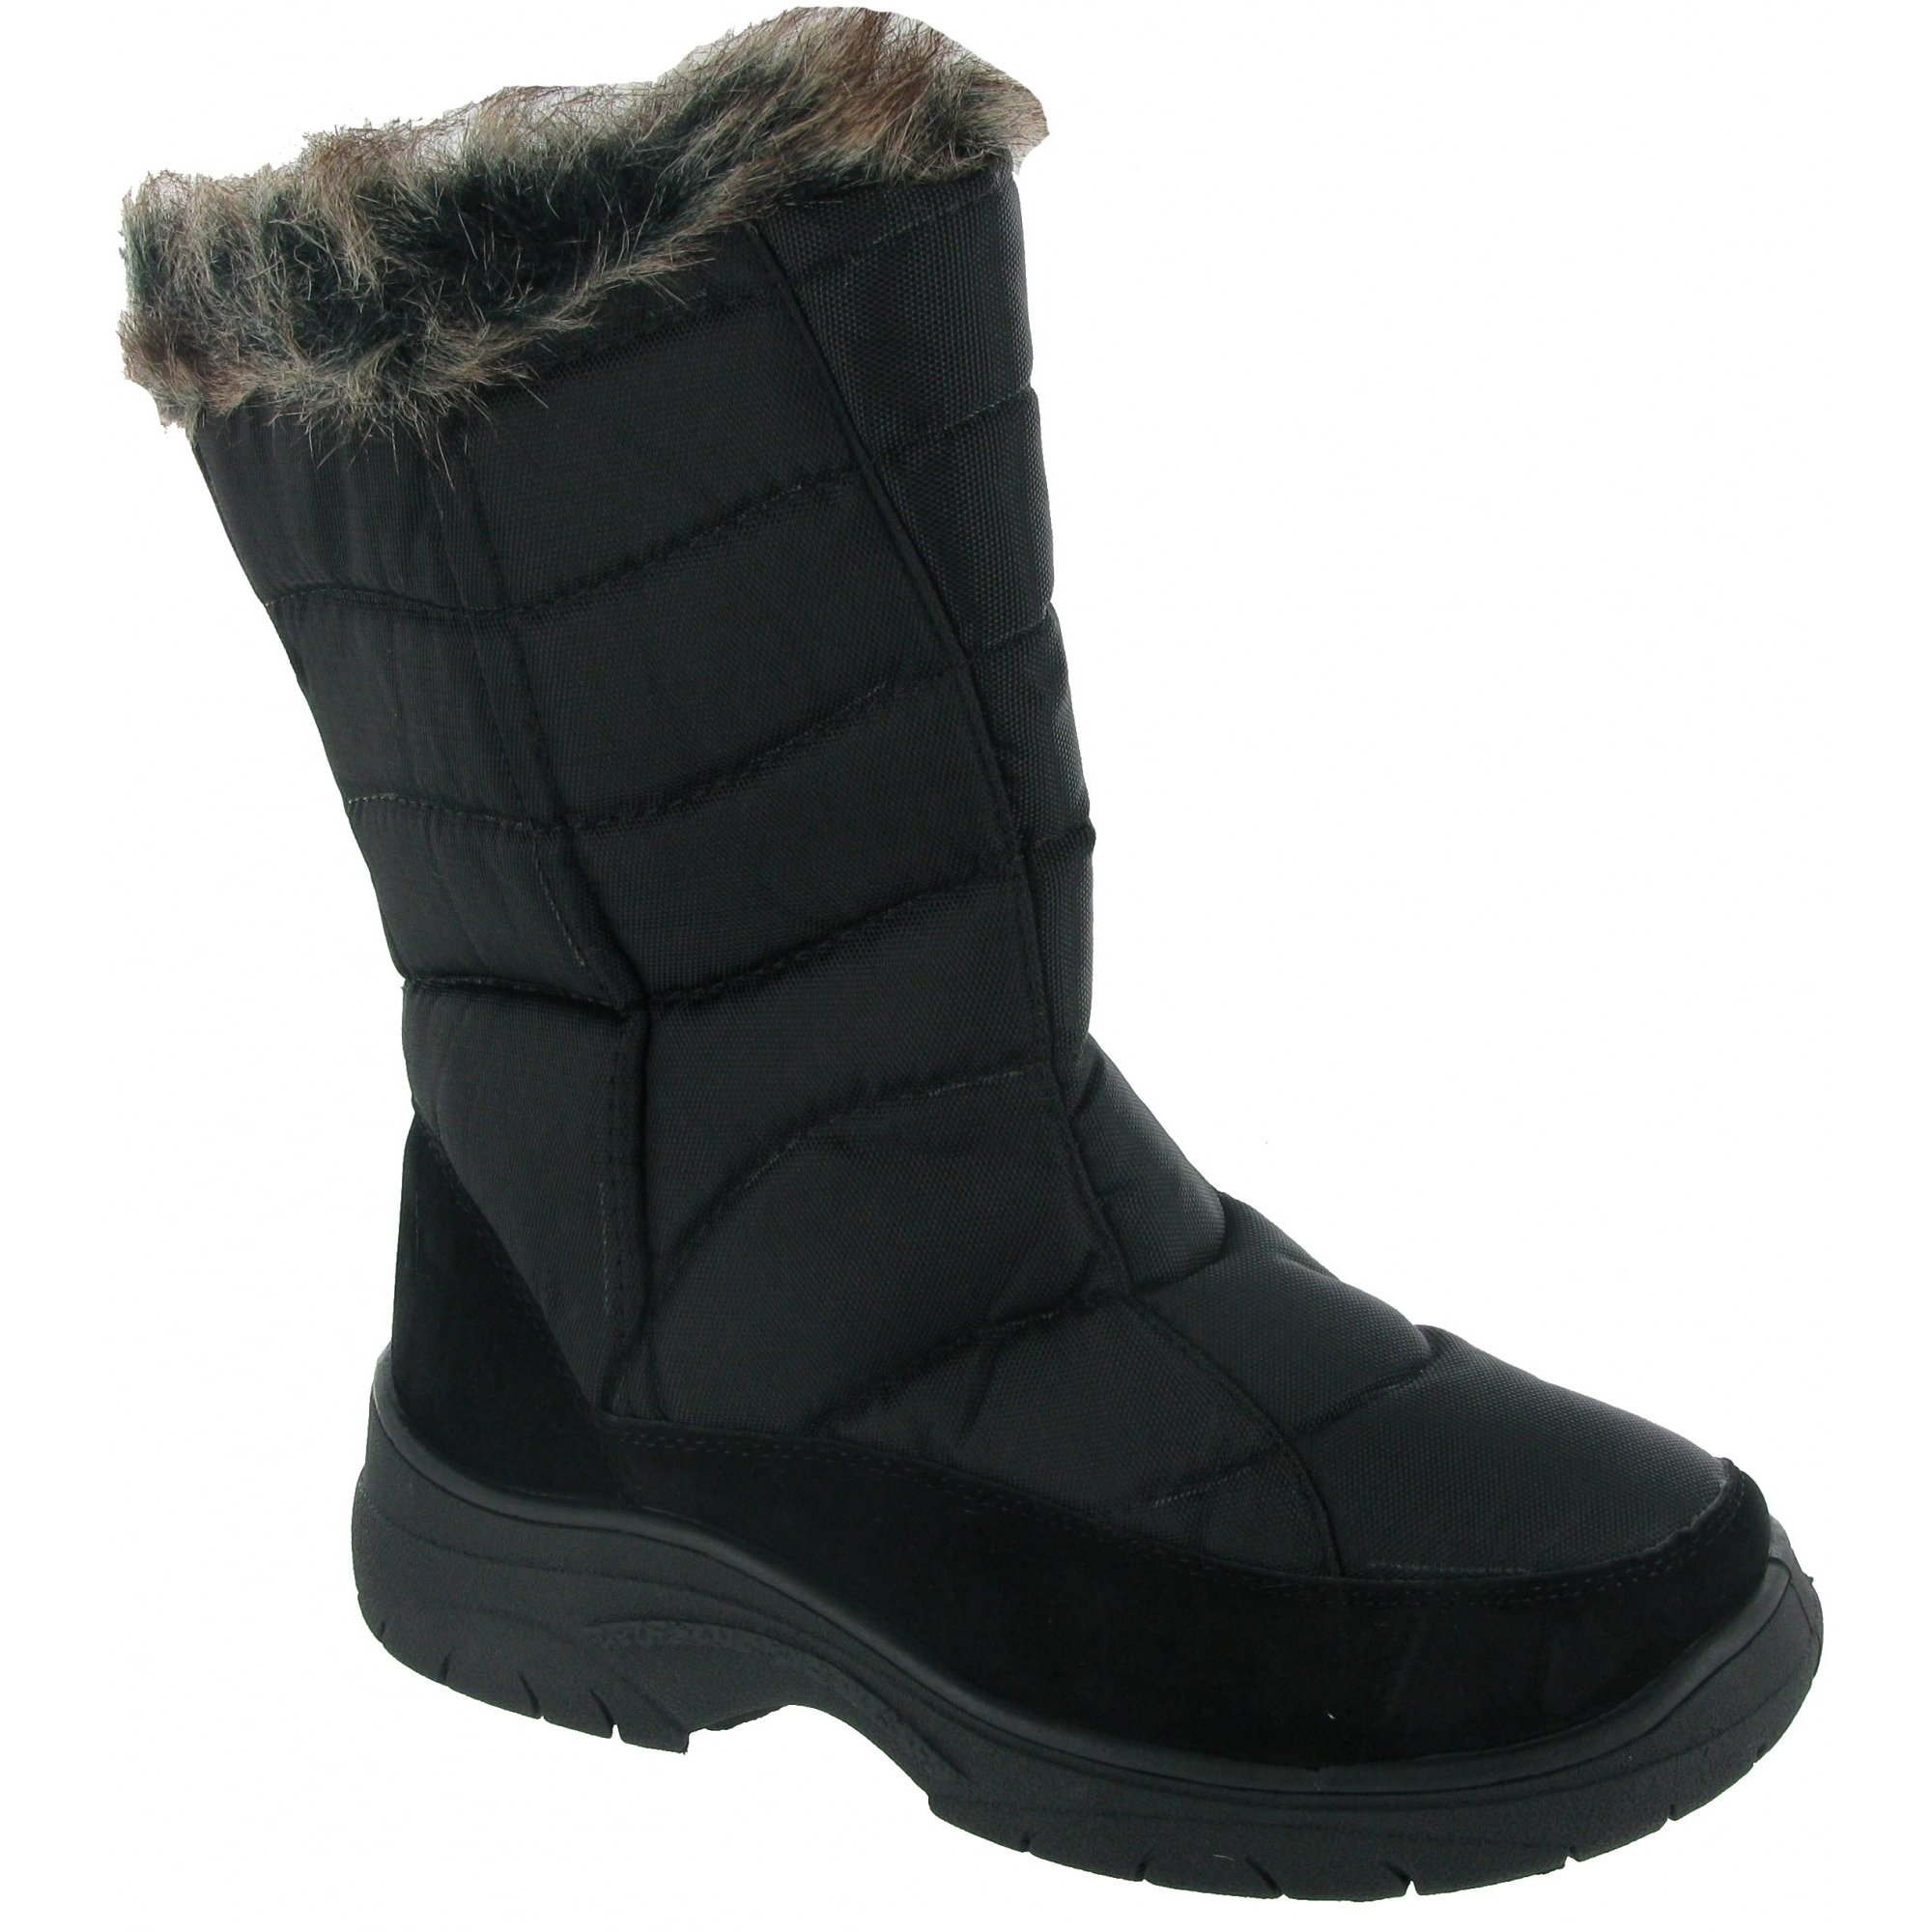 Womens Snow Boots Clearance - Boot Yc